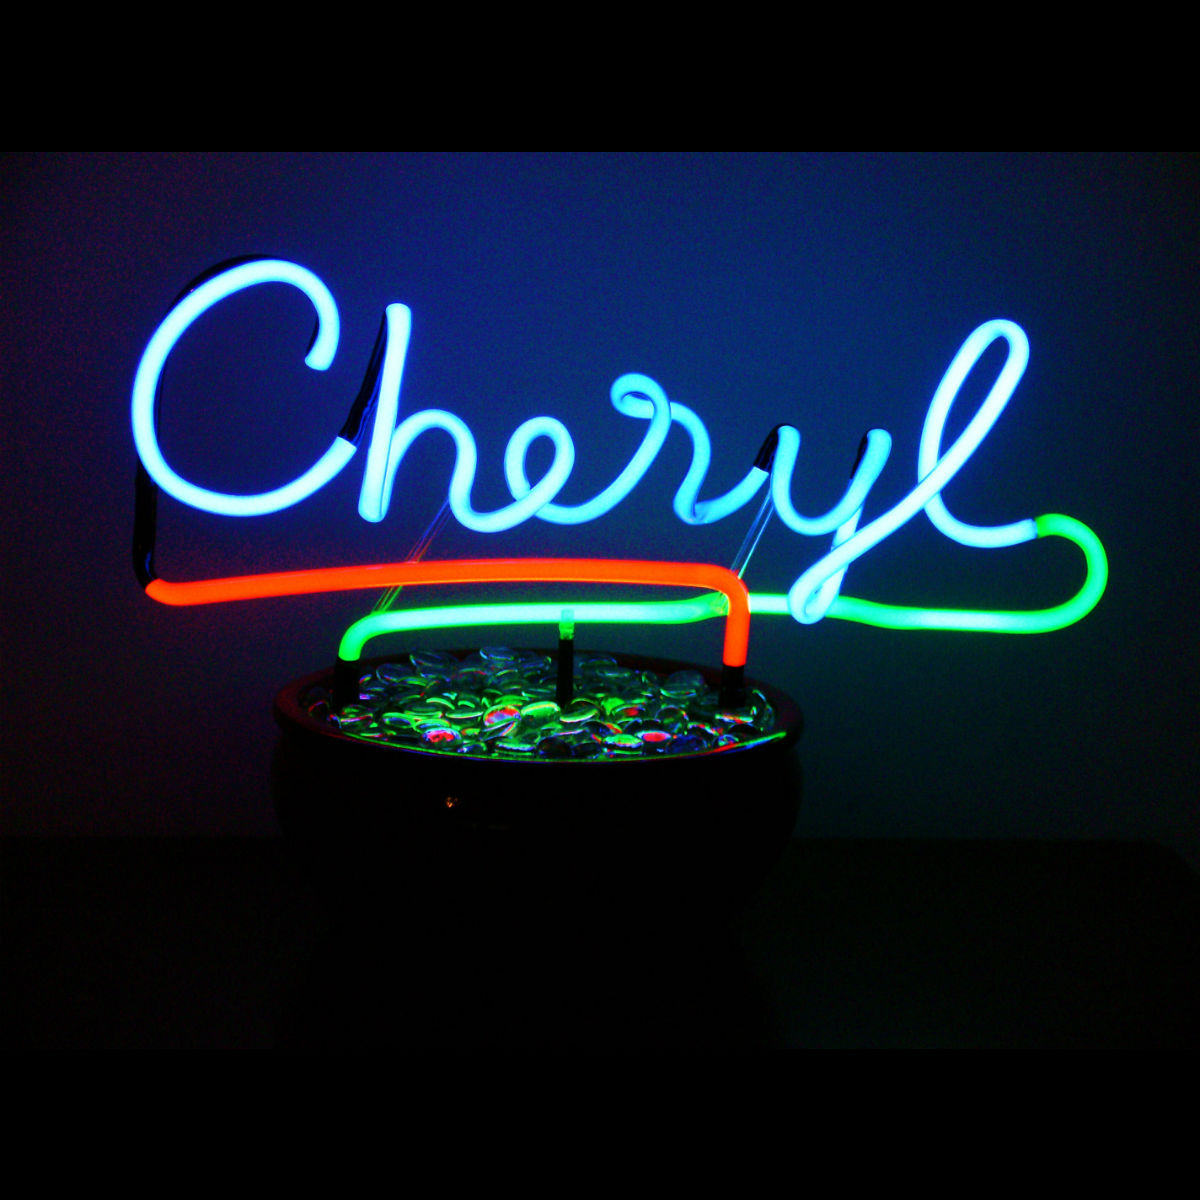 Accent your Interior with Your Name in Custom Neon!